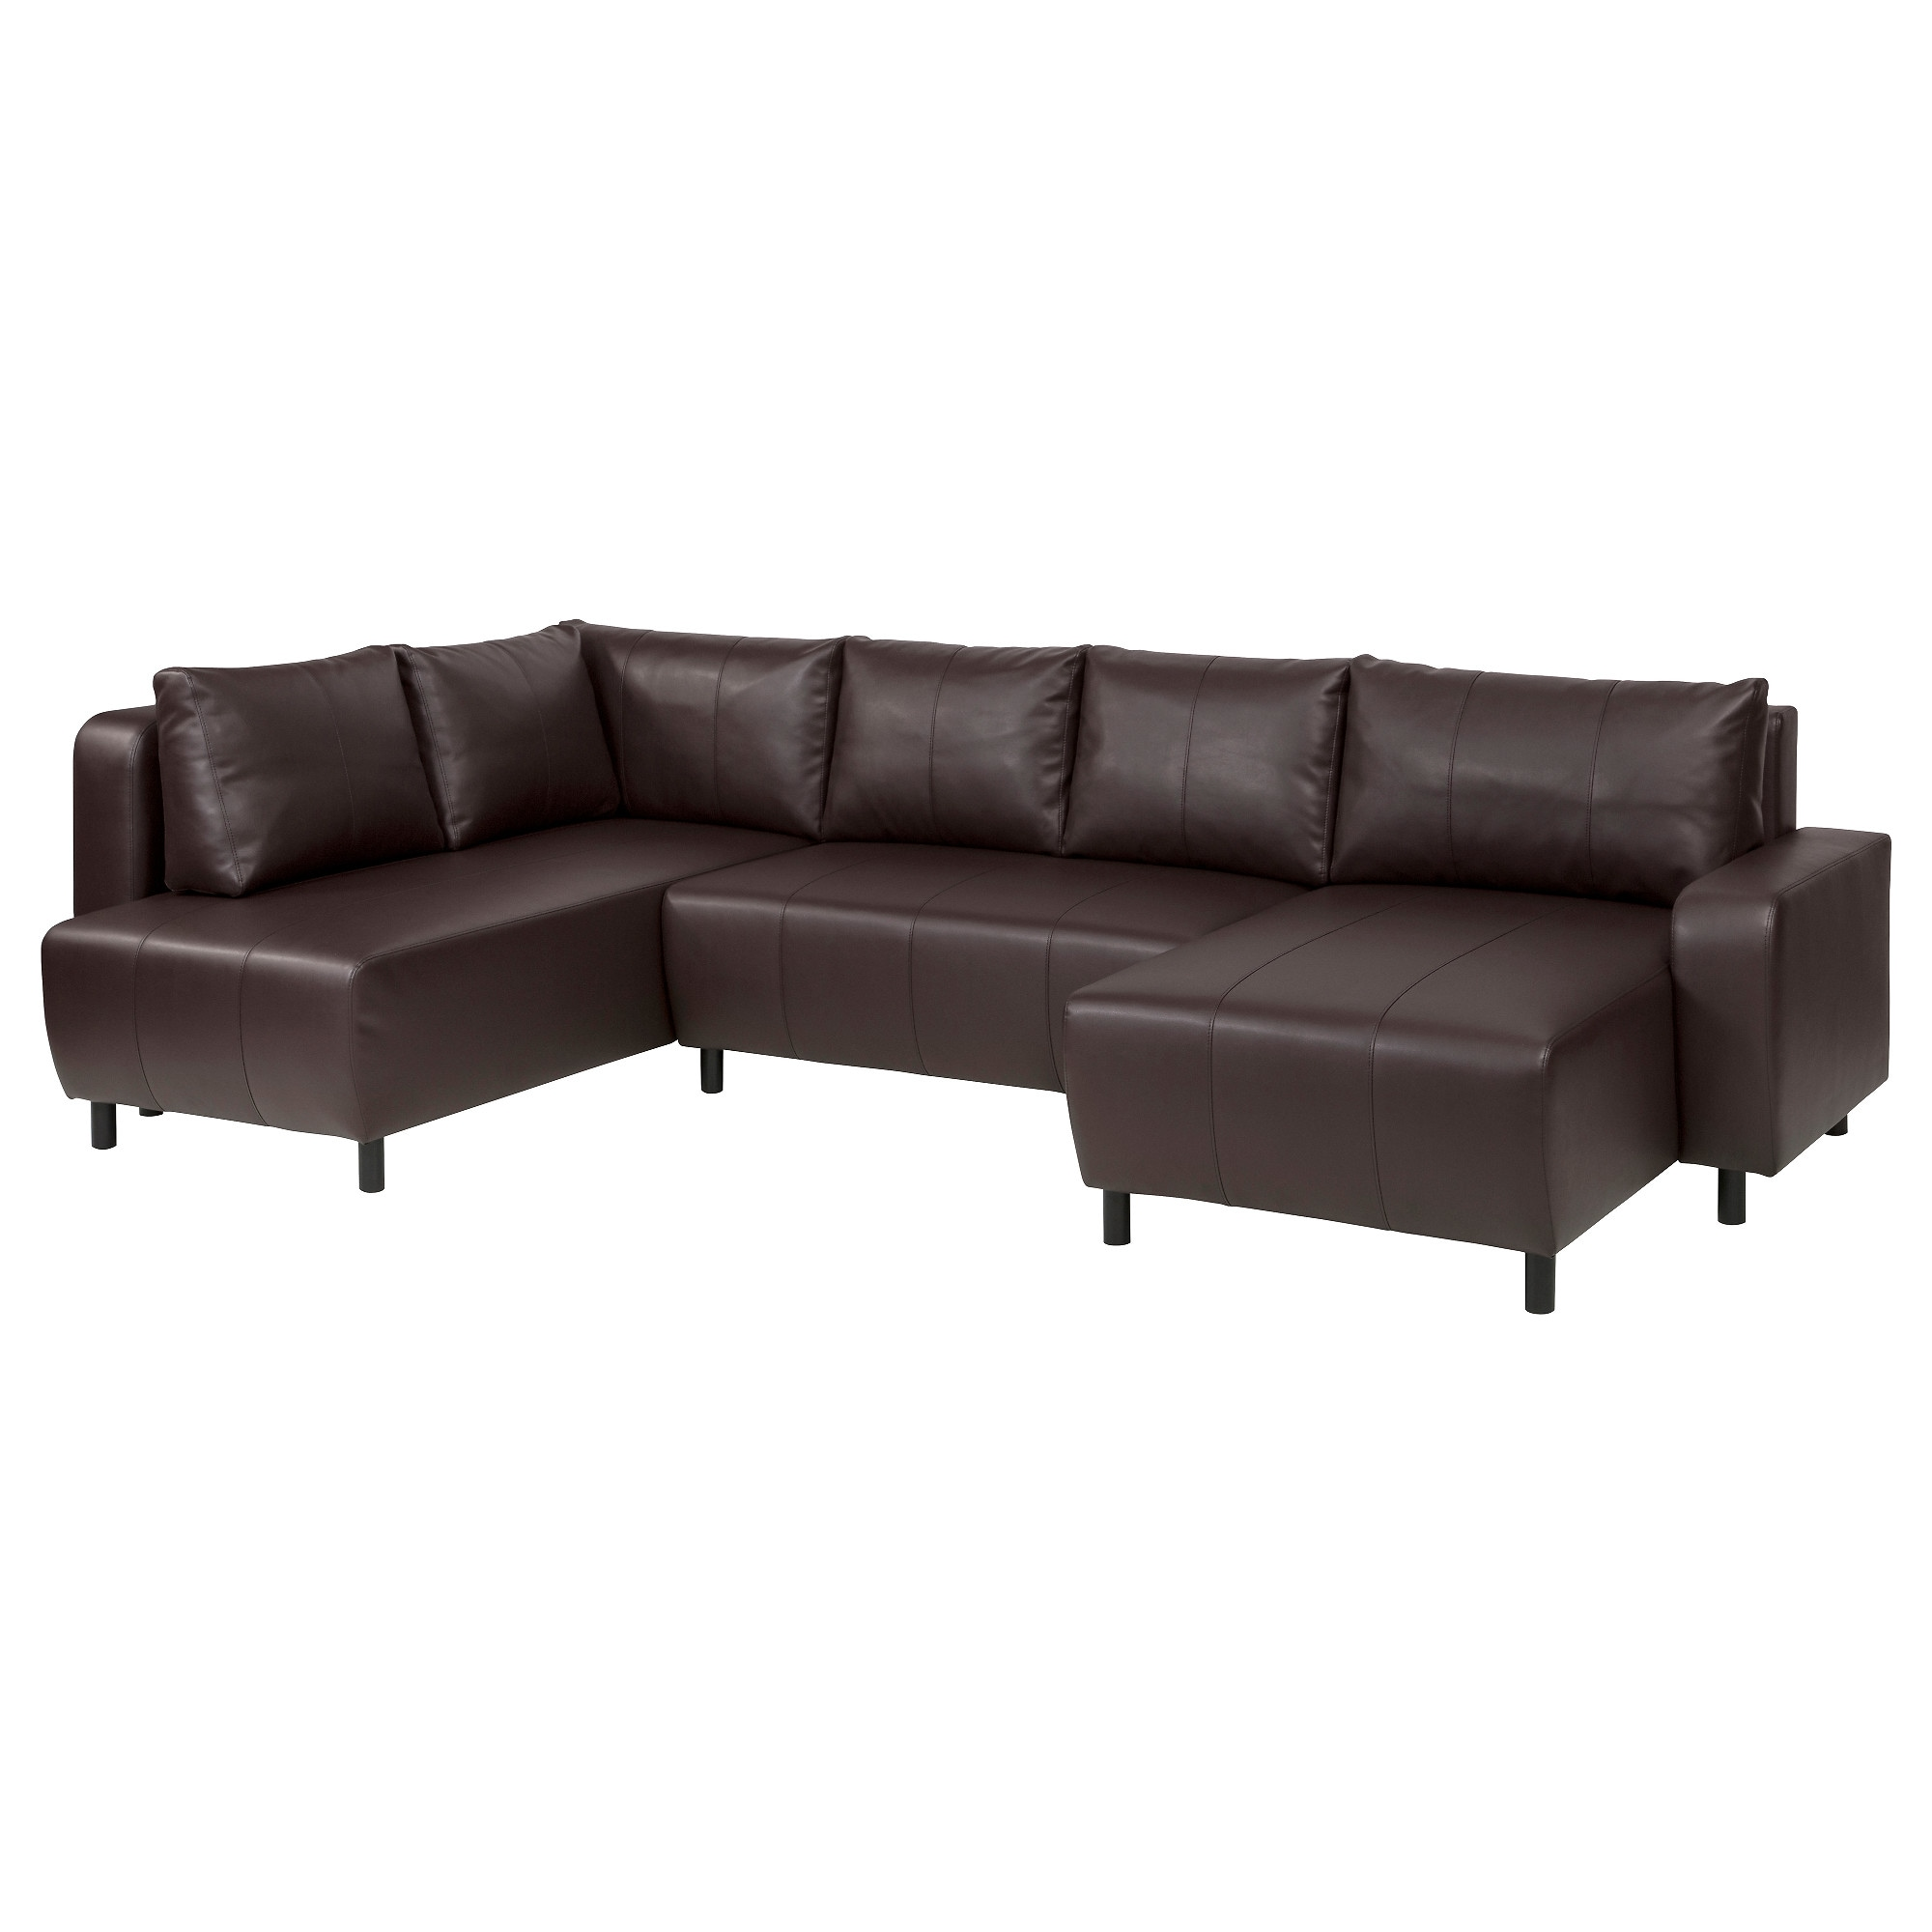 Faux leather sectional sofas IKEA